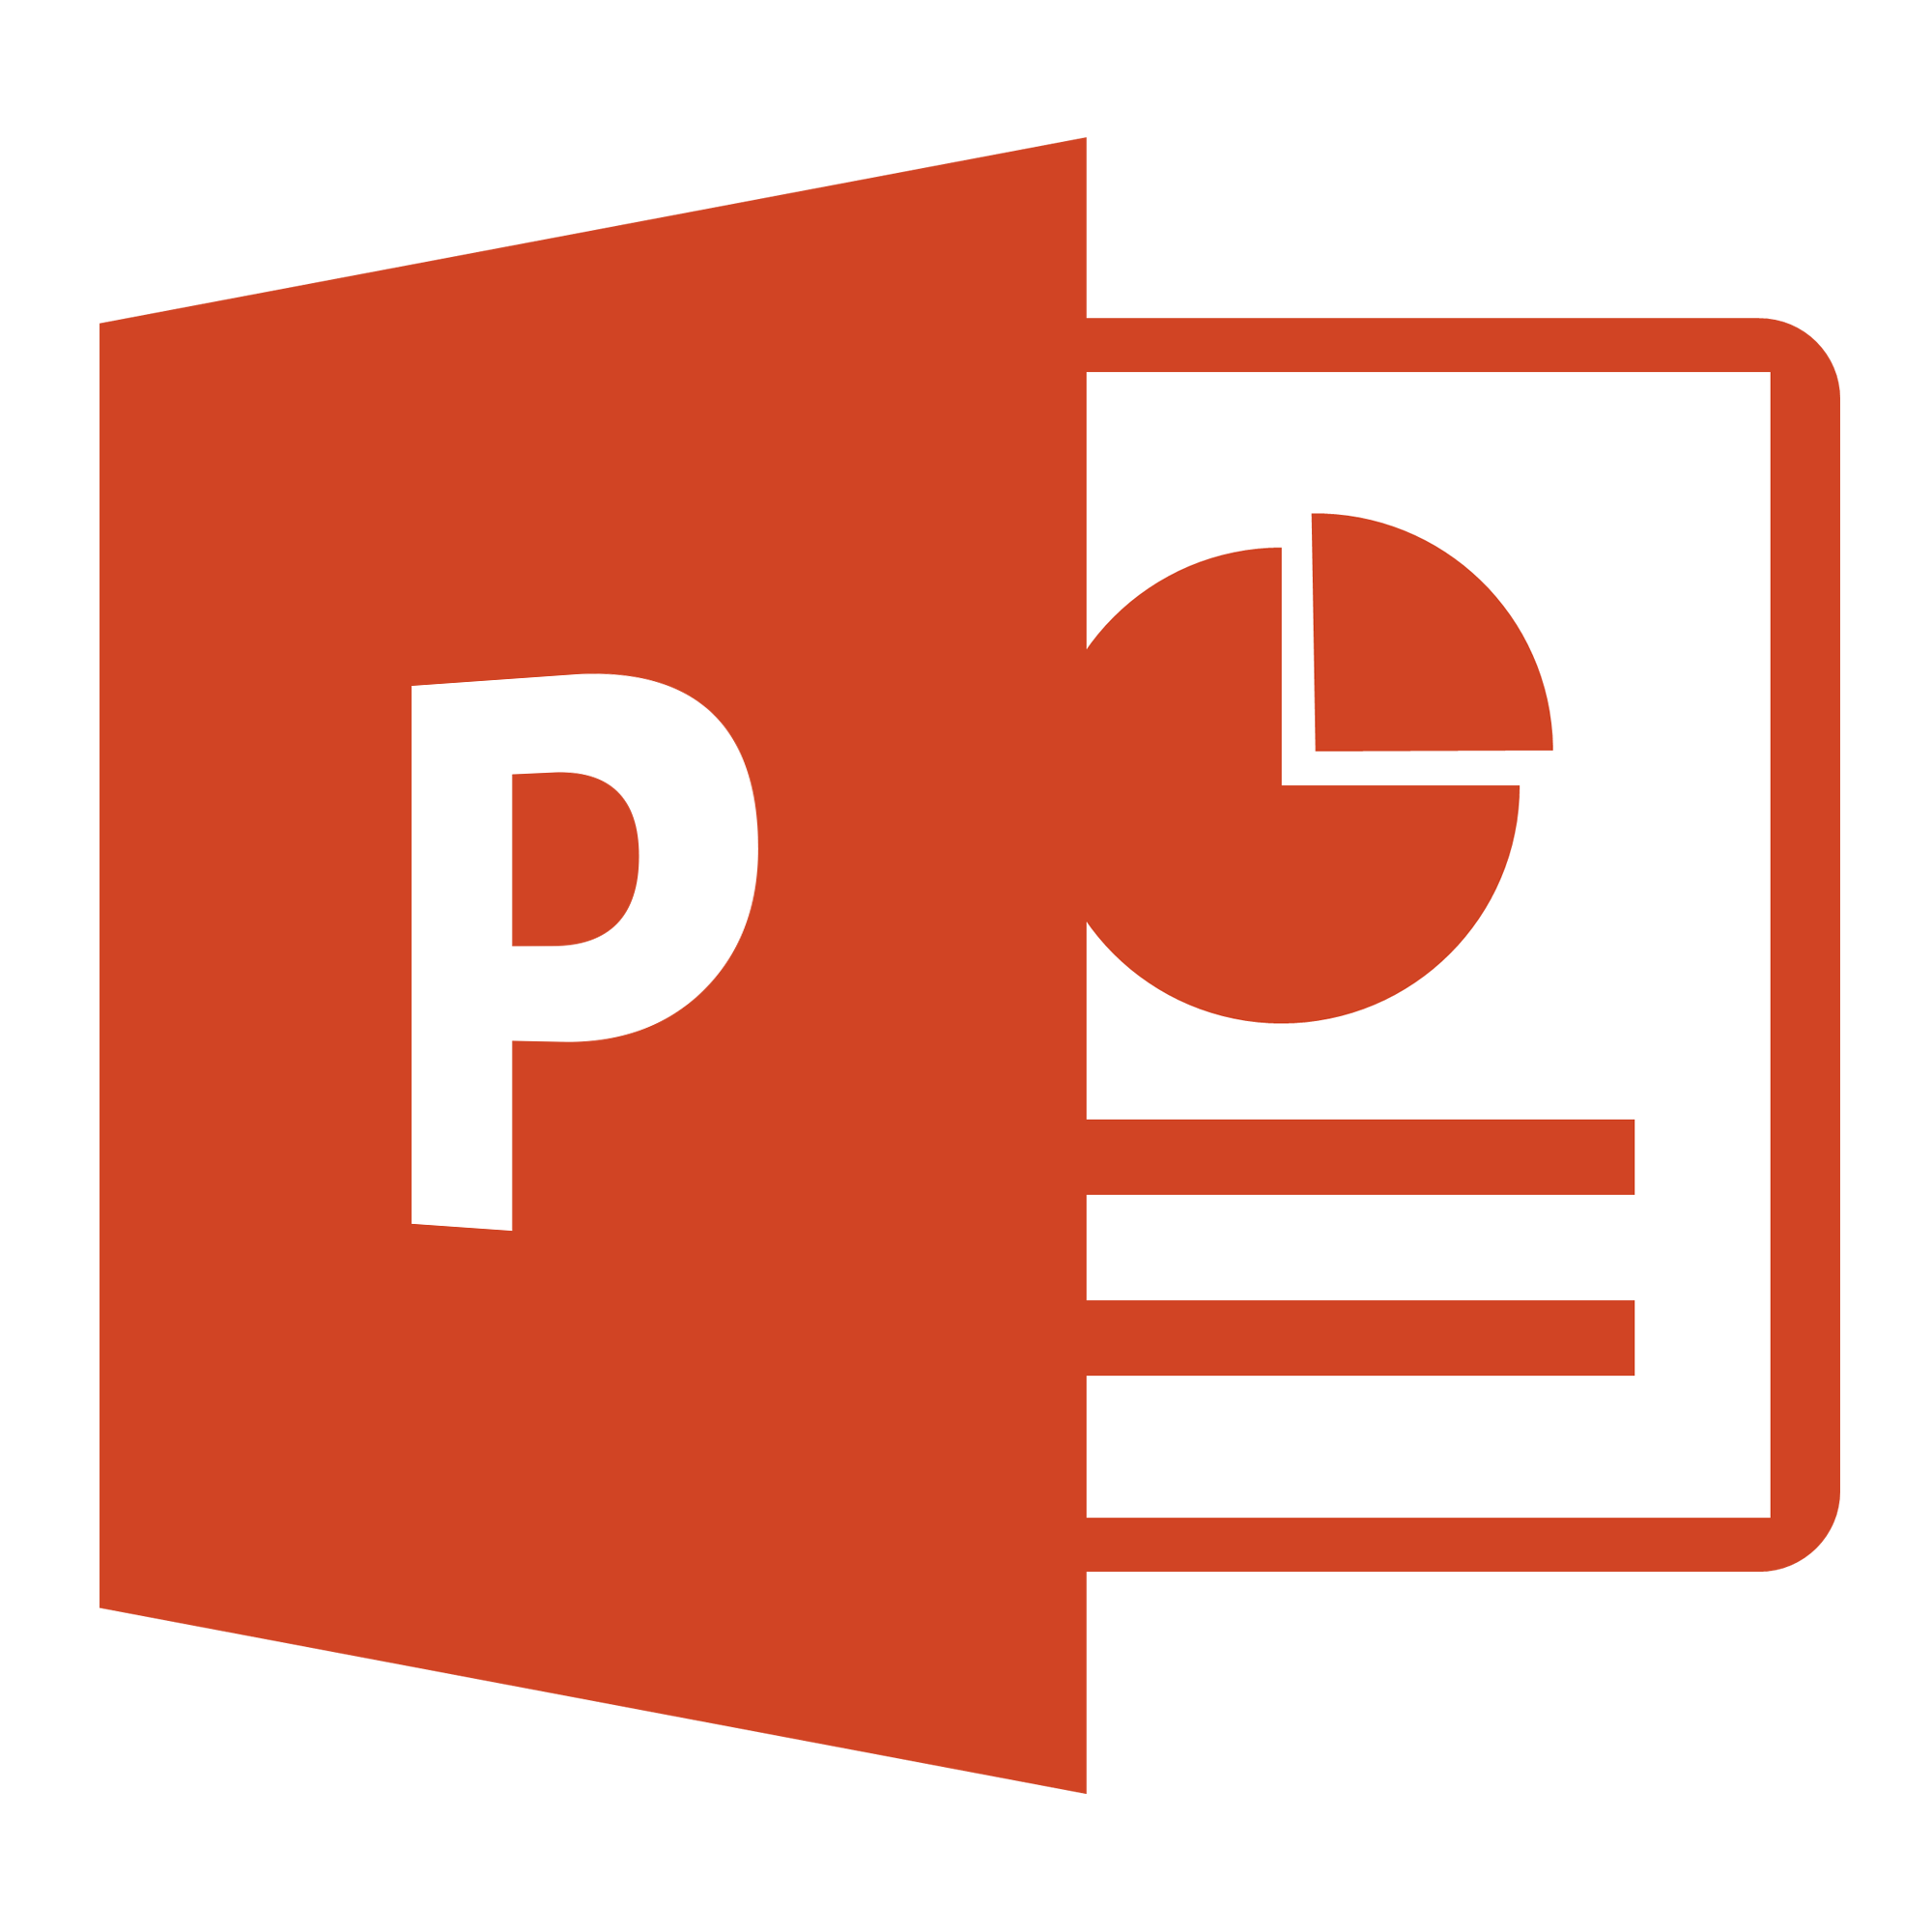 kisspng microsoft powerpoint computer icons ppt presentati microsoft powerpoint network icon 5ab02f8ad92868.3420805015214959468895